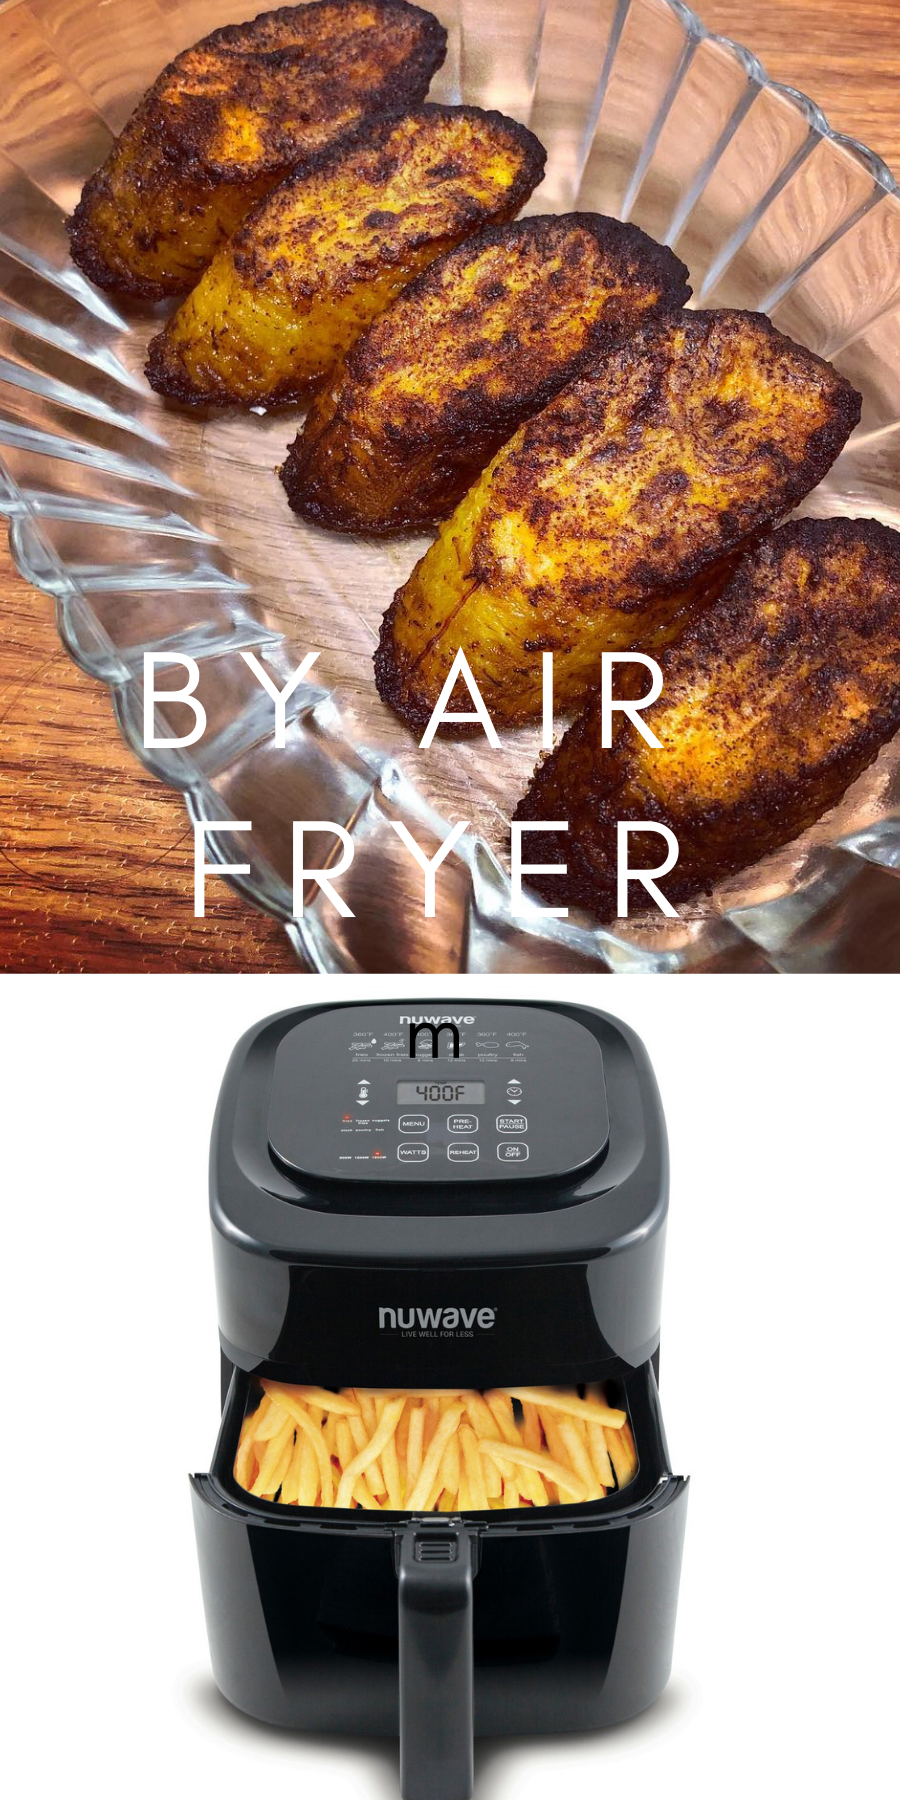 BY AIR FRYER Air fryer, Chef recipes, Frozen fry